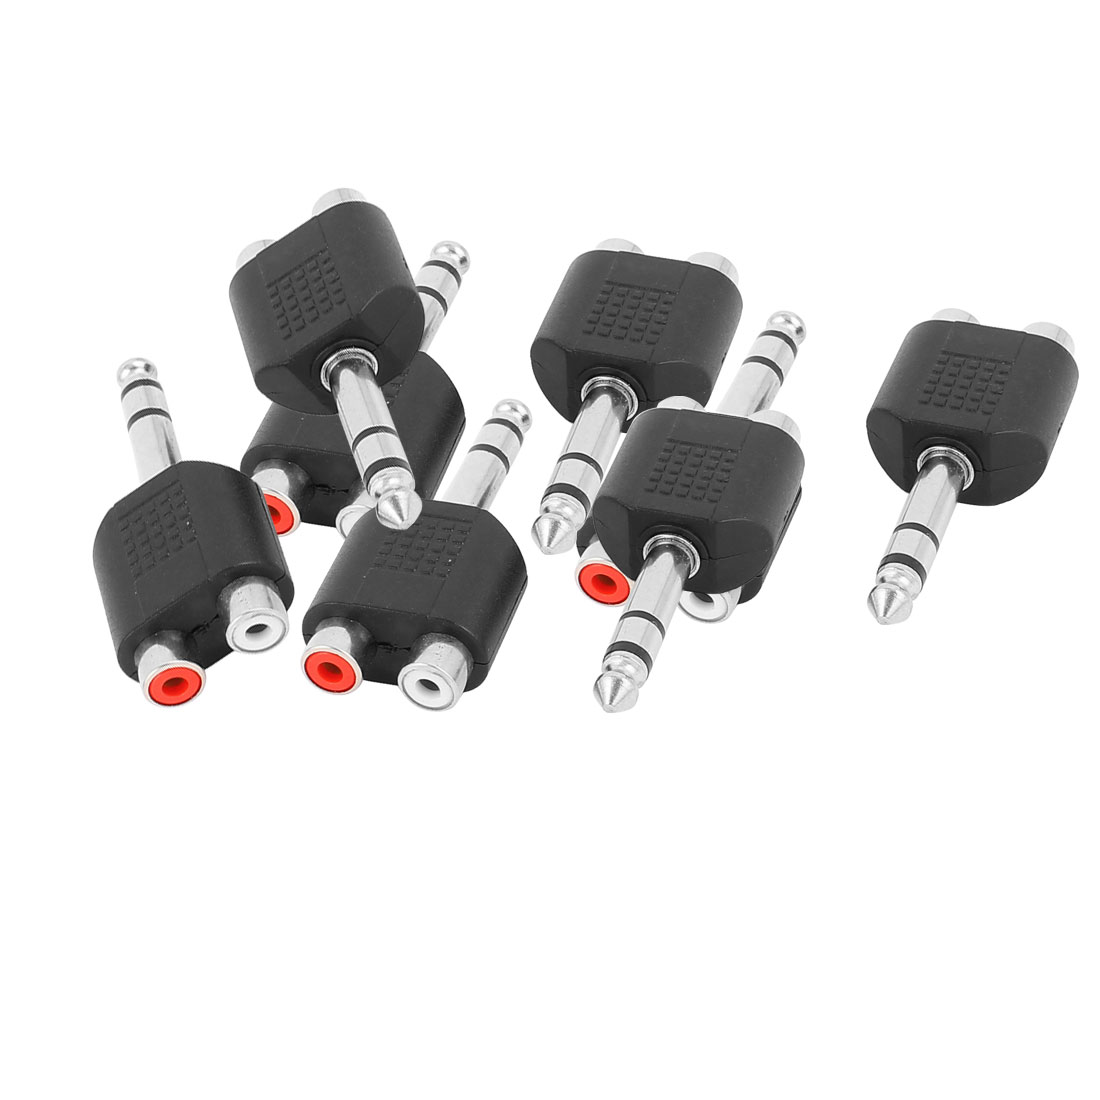 8 Pcs Black 2 RCA Female Jack to 6.35mm Male Stereo Audio Video Connector